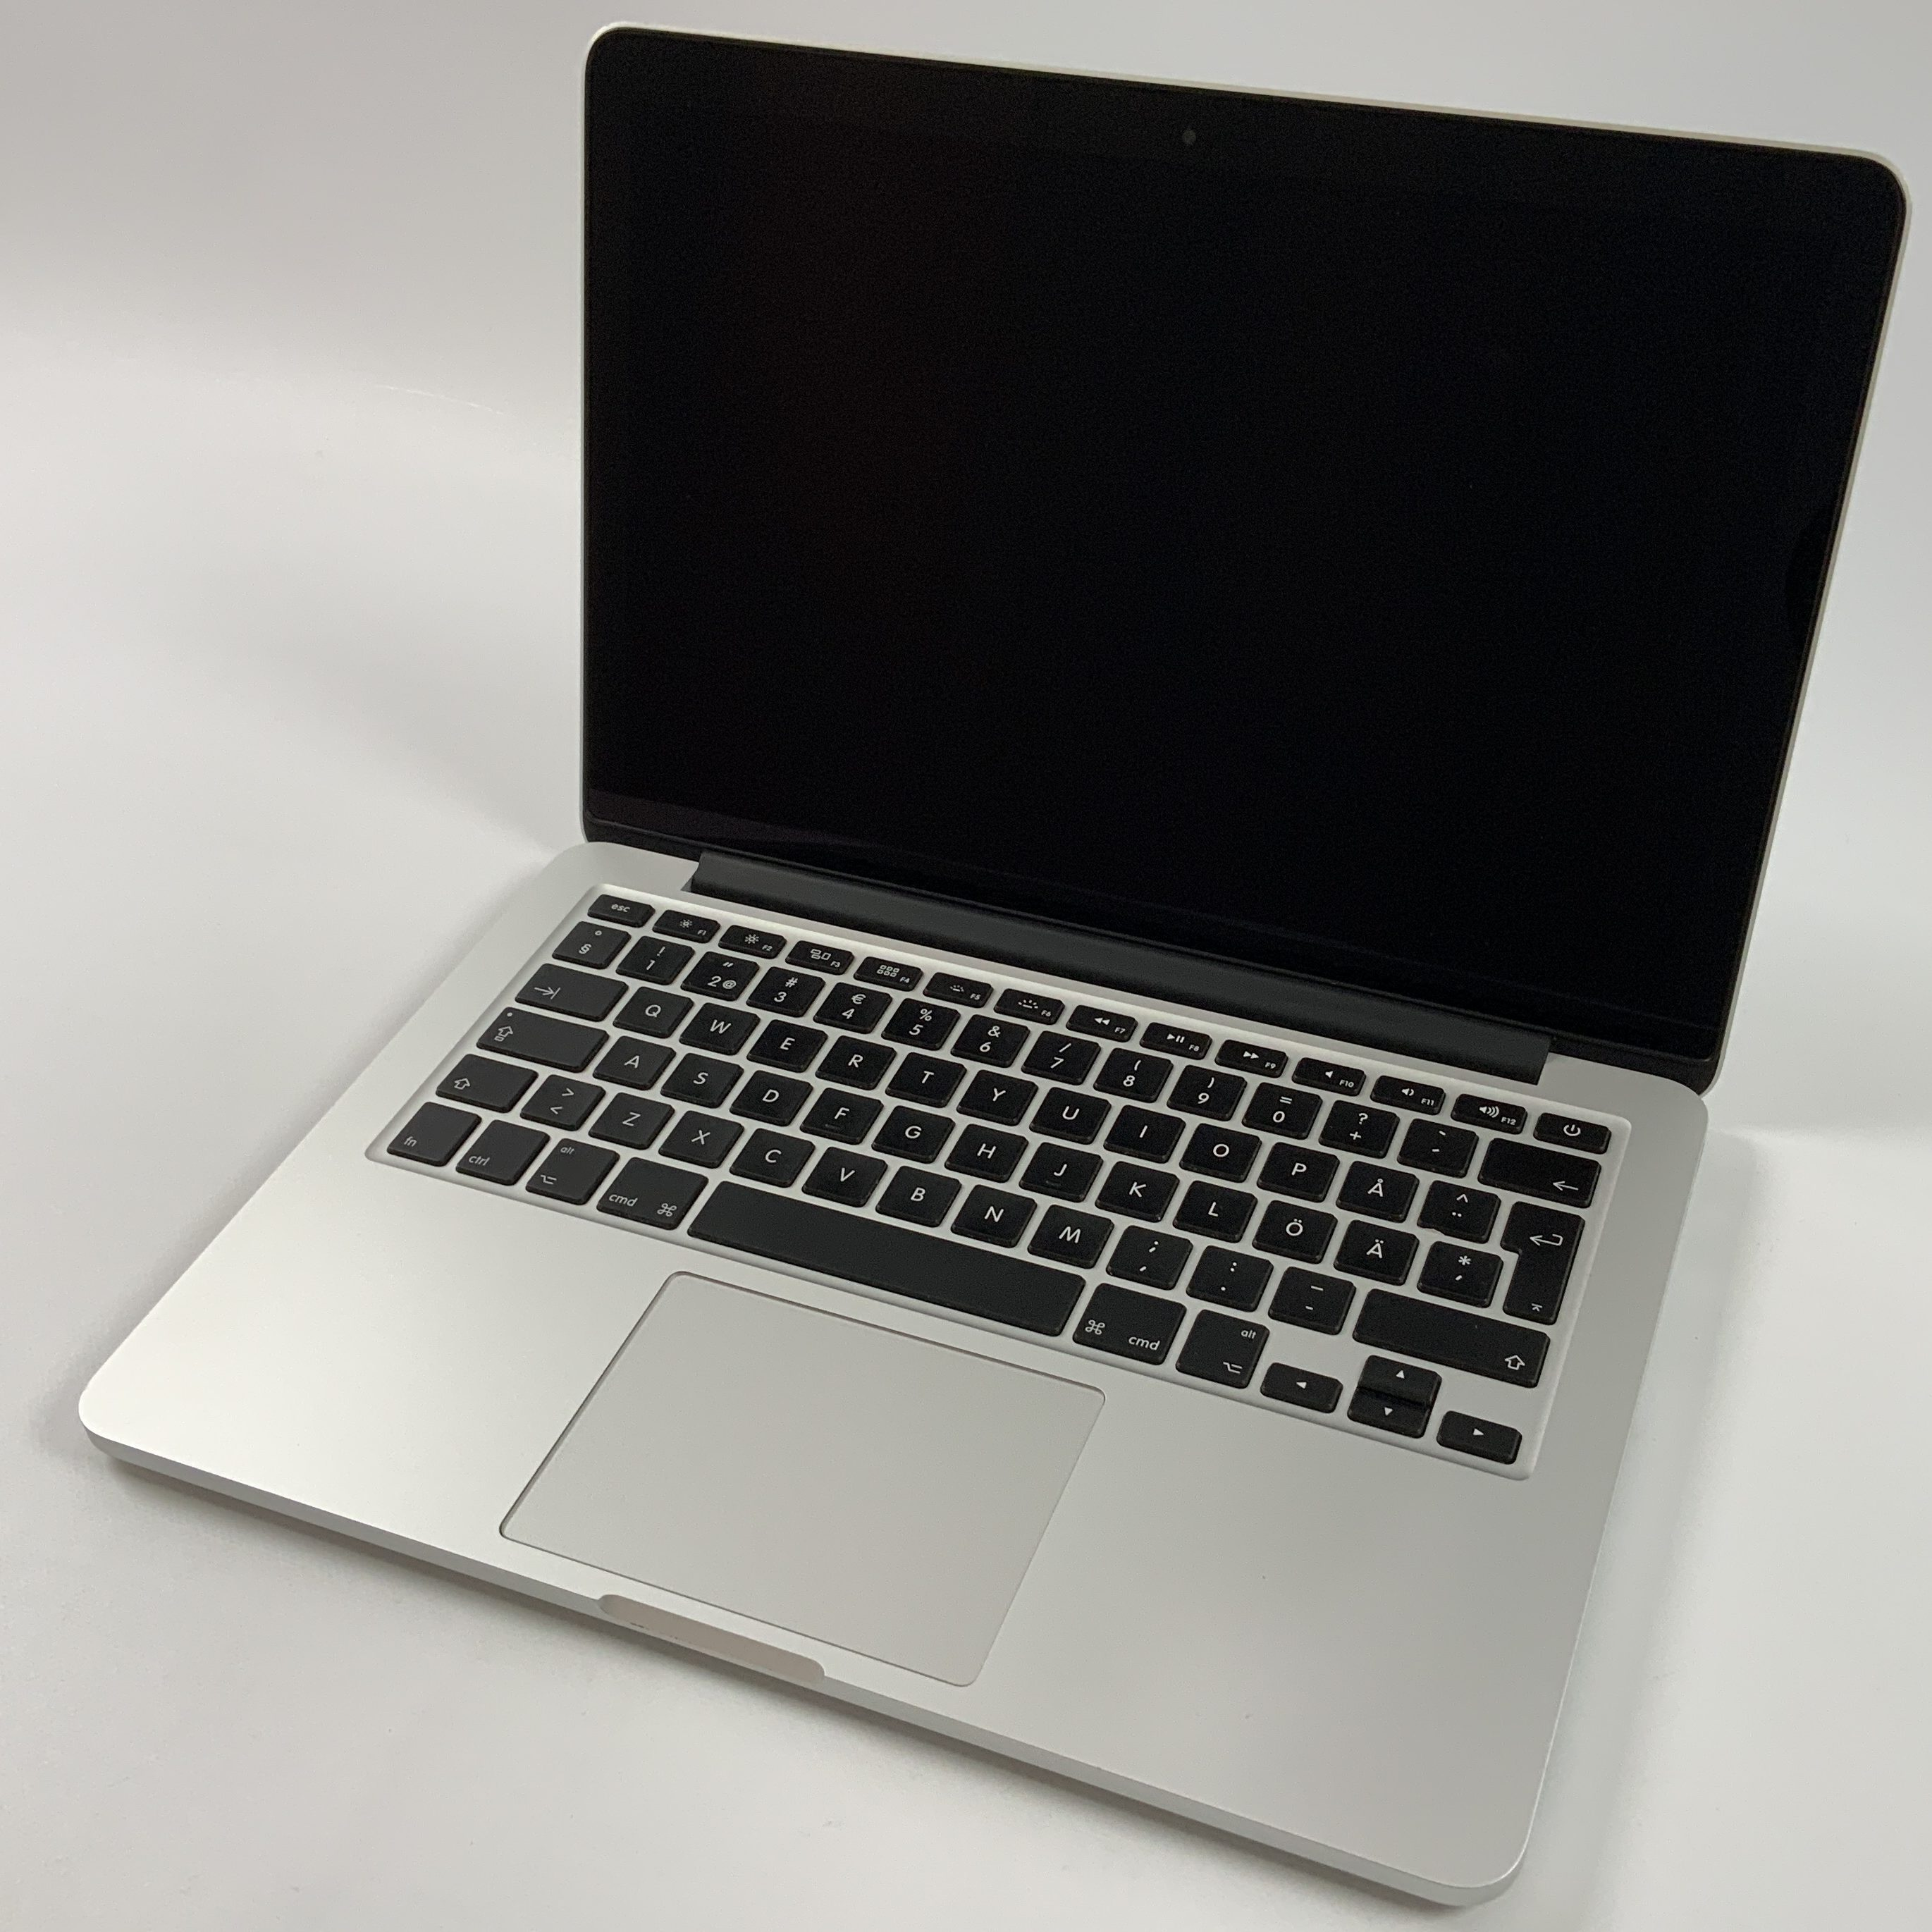 "MacBook Pro Retina 13"" Early 2015 (Intel Core i5 2.9 GHz 8 GB RAM 512 GB SSD), Intel Core i5 2.9 GHz, 8 GB RAM, 512 GB SSD, imagen 1"